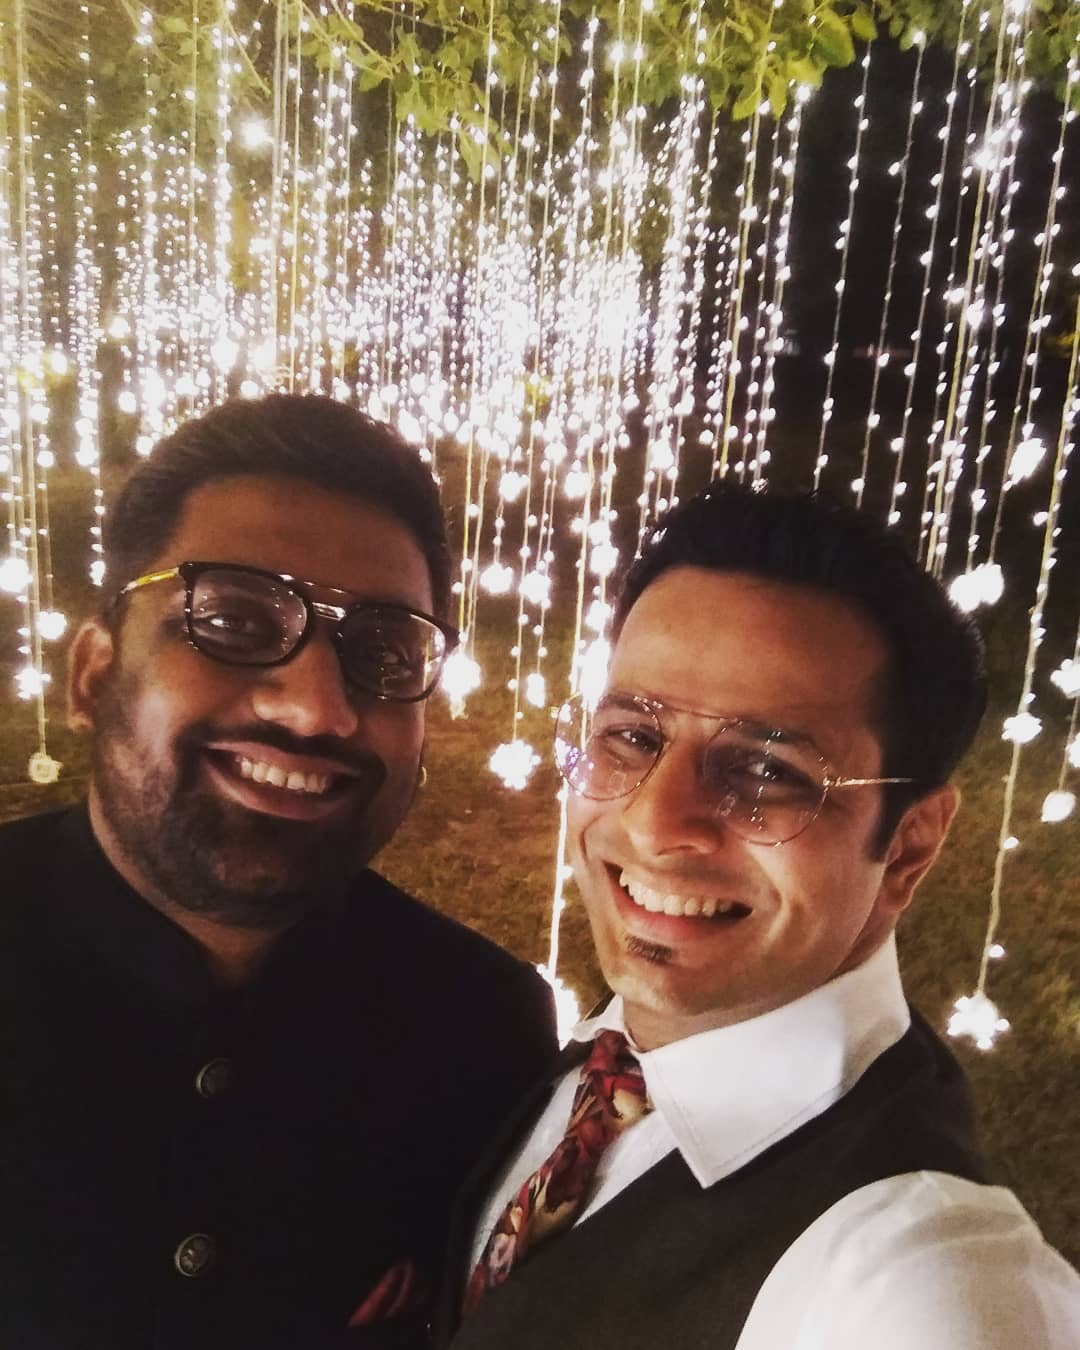 Janmadivas Ni Hardik Shubhkamnao, MANAN DESAI 🎂 HAPPY BIRTHDAY to the person with whom I've performed, entertained, struggled, reveled, smiled, cried, laughed, fought, argued, agreed, ogled, appreciated, loved, hated, chided, criticised, hurt, healed, applauded, cheered, screamed, mimicked, admired, gifted, sang, danced, swam, flew, written, directed, acted, created and dreamt... together. Let's travel, again, to those times and back, for eons to come. 🤗❣️ #manandesai#happy#birthday#dearfriend#ojasrawal#thecomedyfactory#gujju#gujarat #ahmedabad #vadodara #surat #baroda #mumbai #standup #standupcomedy #jatitehje #ashudhgujarati #funny #buddy #lovethisguy #comiclife #comedians #standupcomedians #happybirthday #pal #memories #thisguy #love #goodtimes #always @thecomedyfactoryindia @instafunny_manan